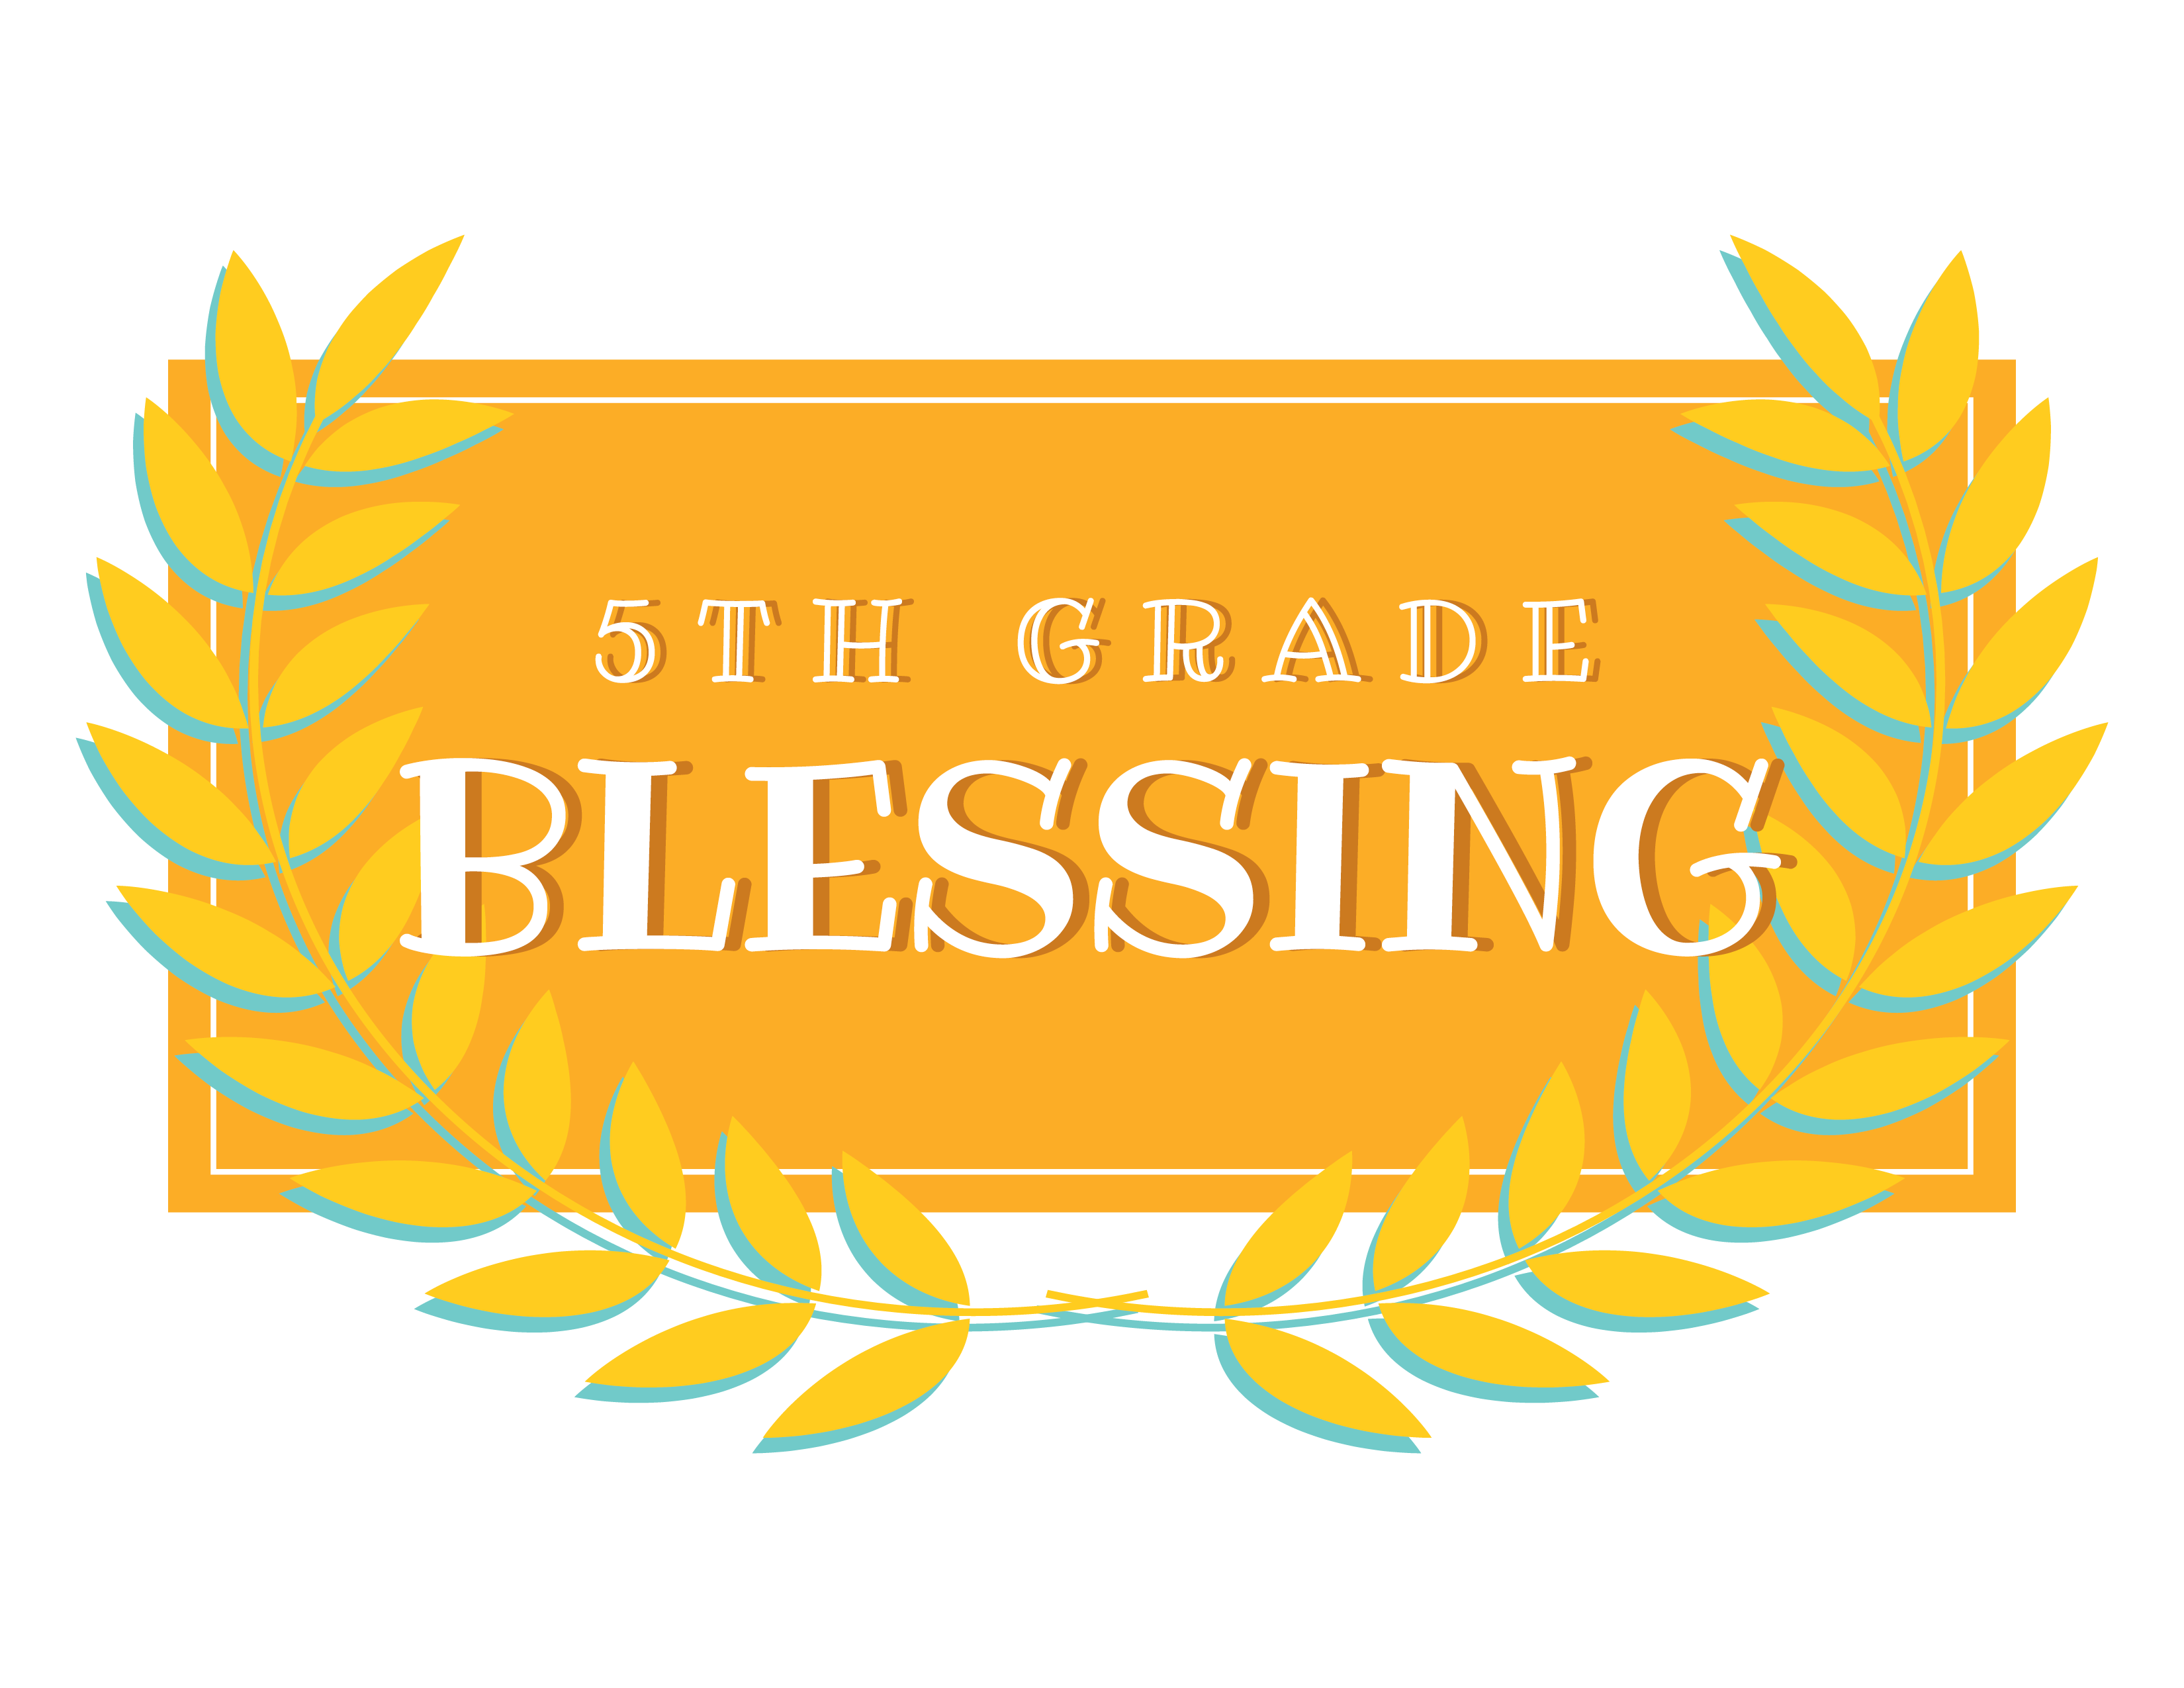 5th Grade Blessing